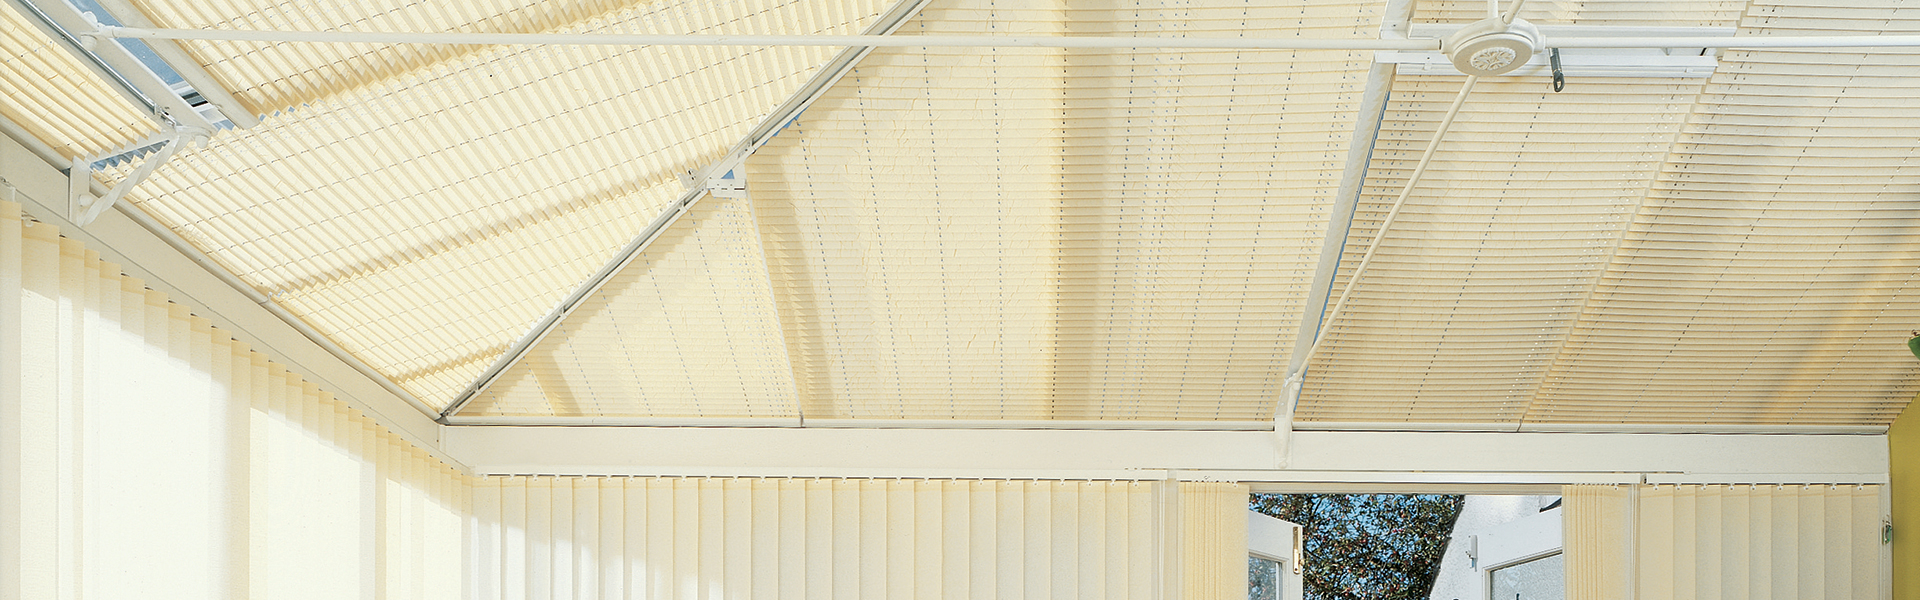 conservatory-roof-blinds-hero-2